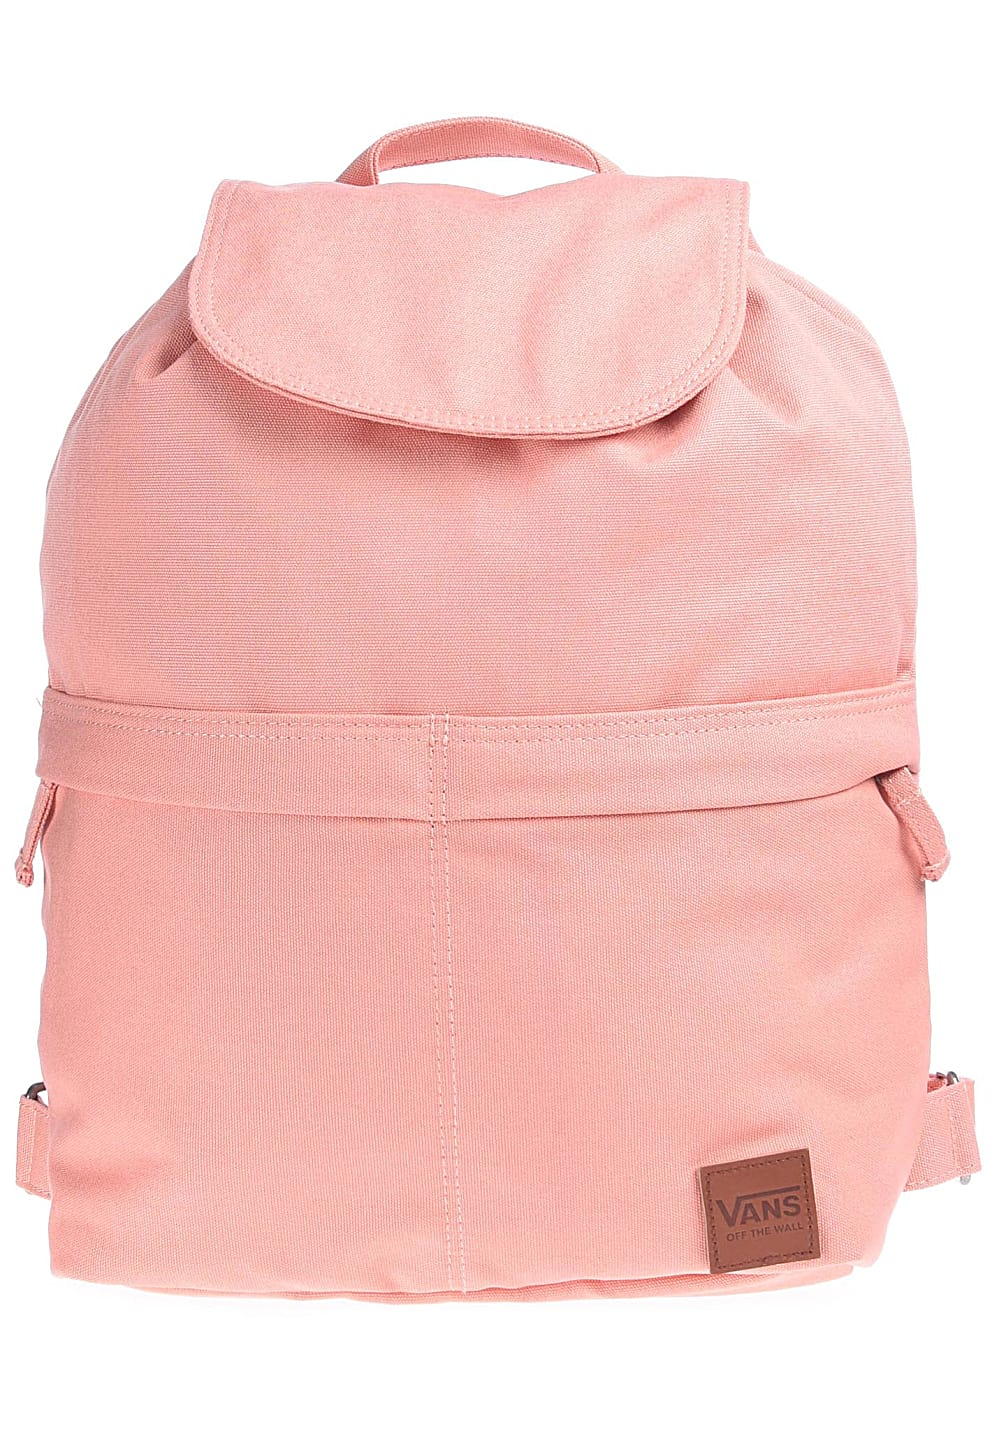 VANS Lakeside - Rucksack für Damen - Pink - Planet Sports